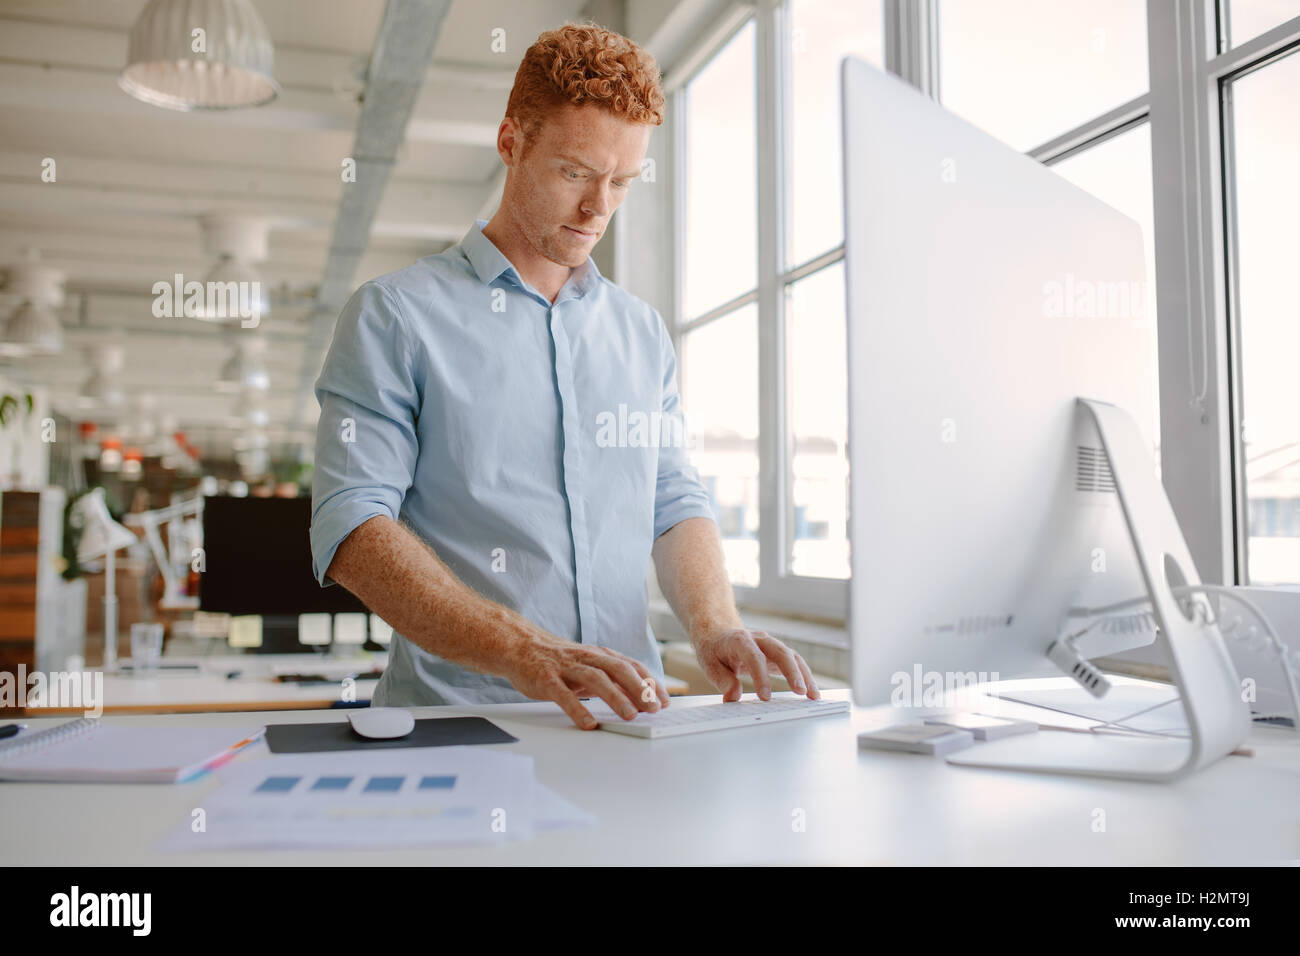 Shot of young man standing at his desk and working on computer. Businessman working in modern office. - Stock Image